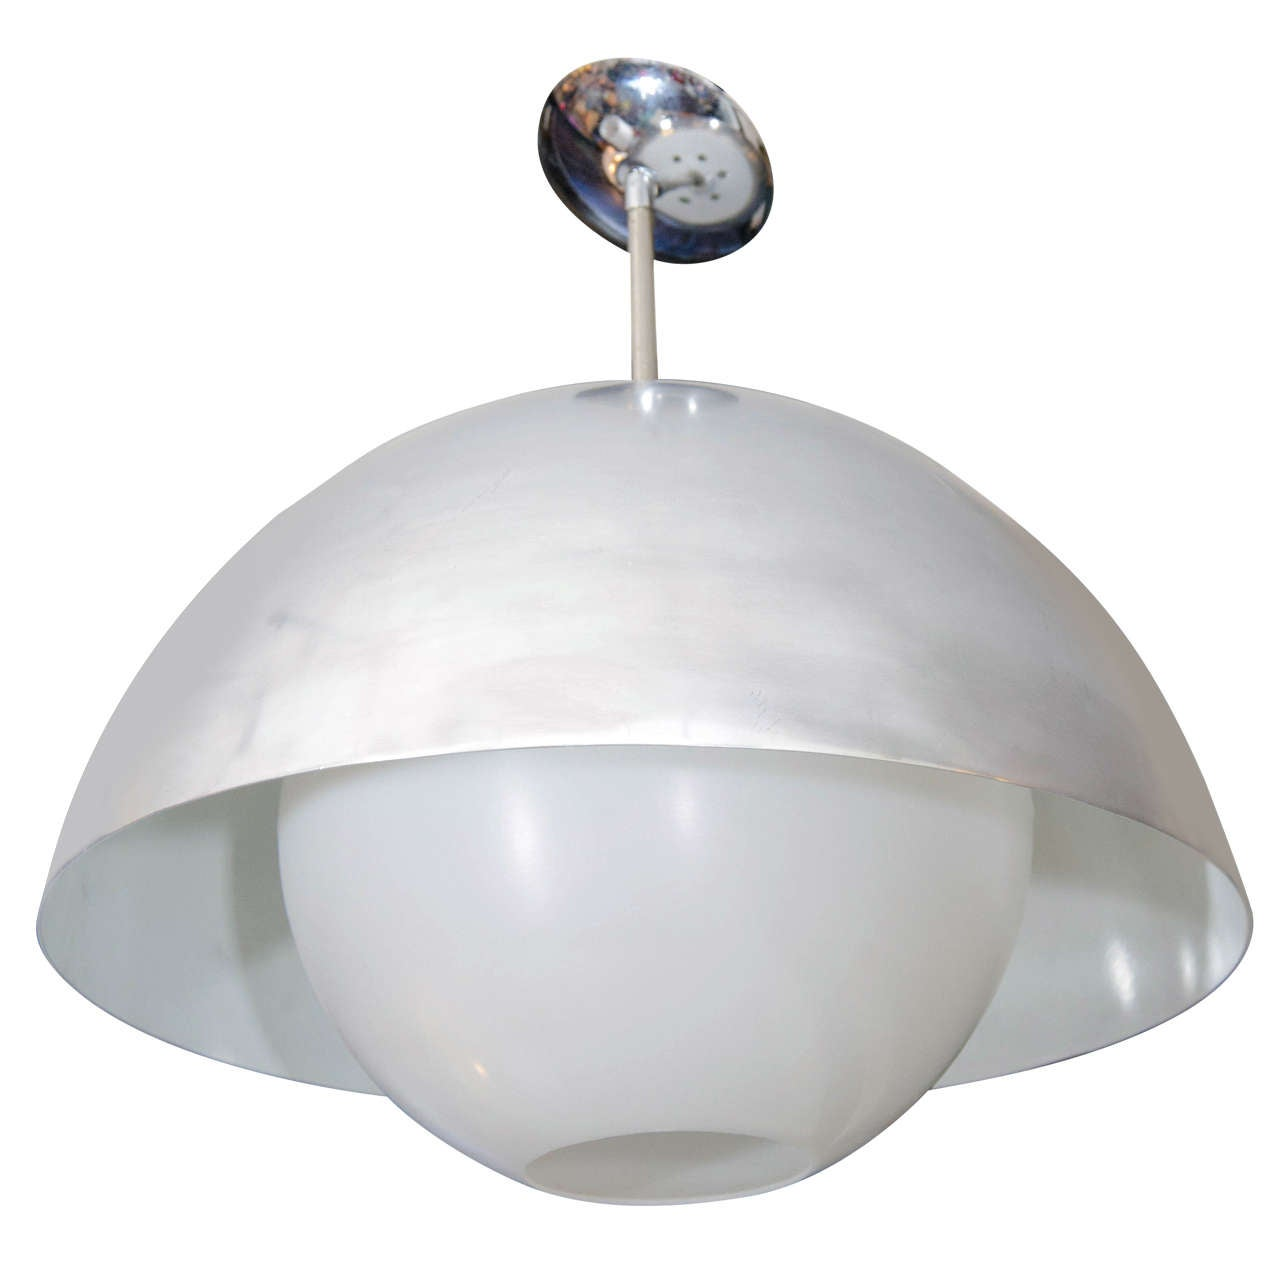 Mid century modern dome pendant light by paul mayen at 1stdibs for Mid century modern hanging lamp